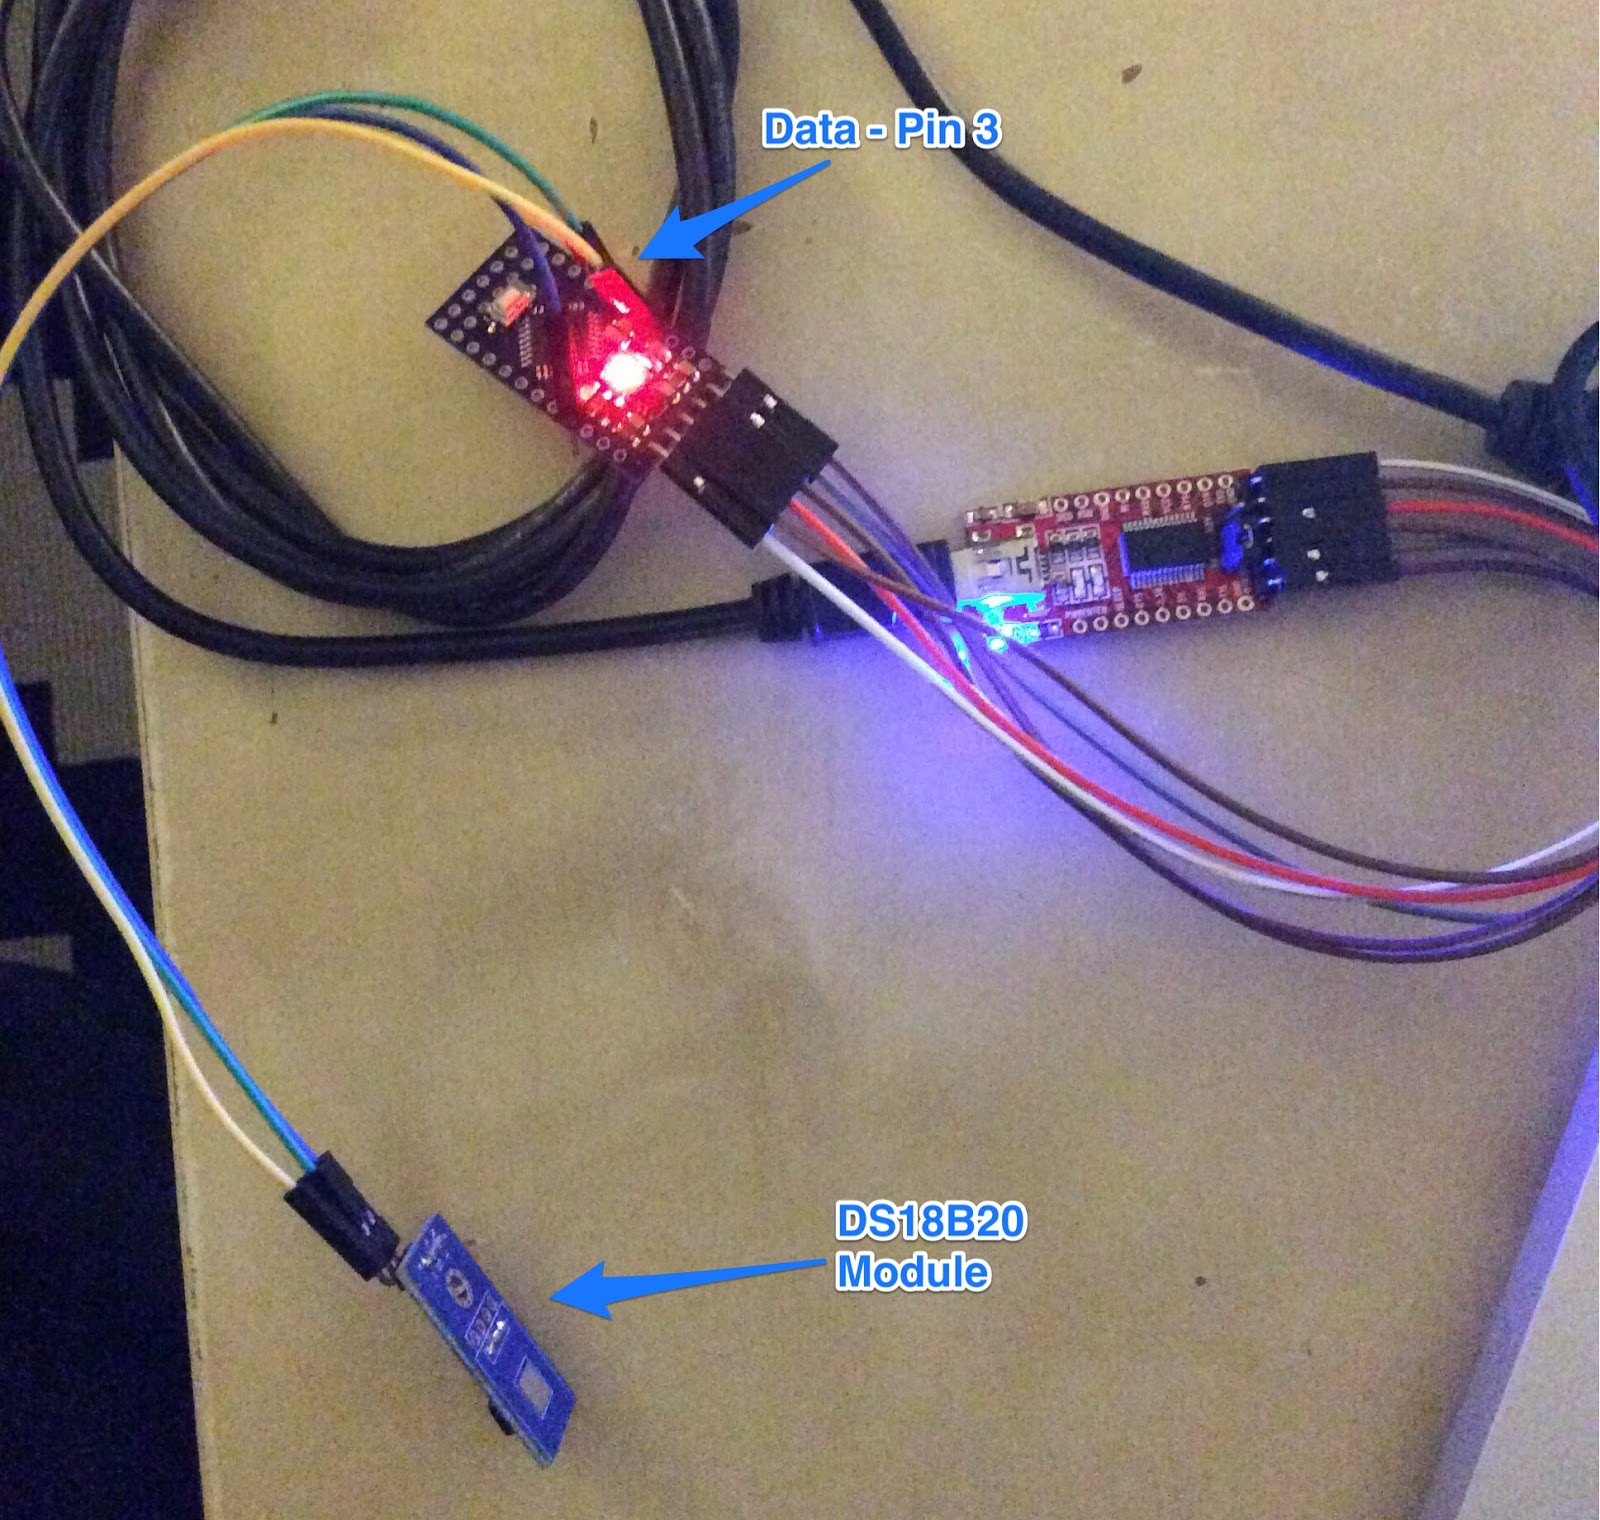 I Build Stuff February 2015 Ds18b20 Wiringpi Wireless Room Temperature Monitoring System Sensing With Sensor And Arduino Pro Mini